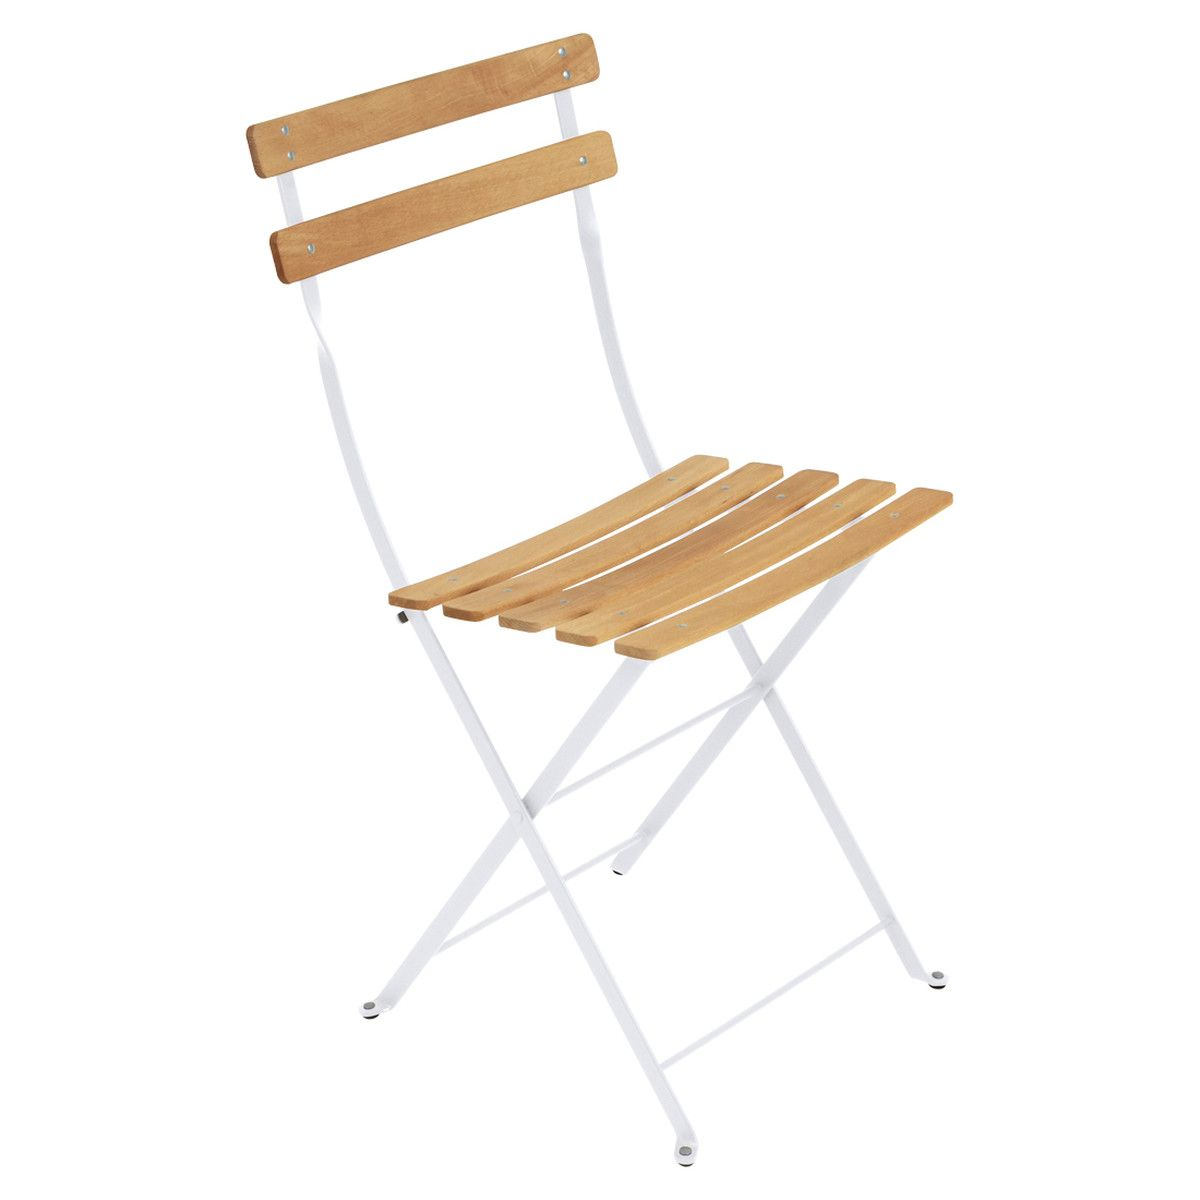 Fermob Bistro Klappstuhl Naturel Baumwollweiss Folding Chair